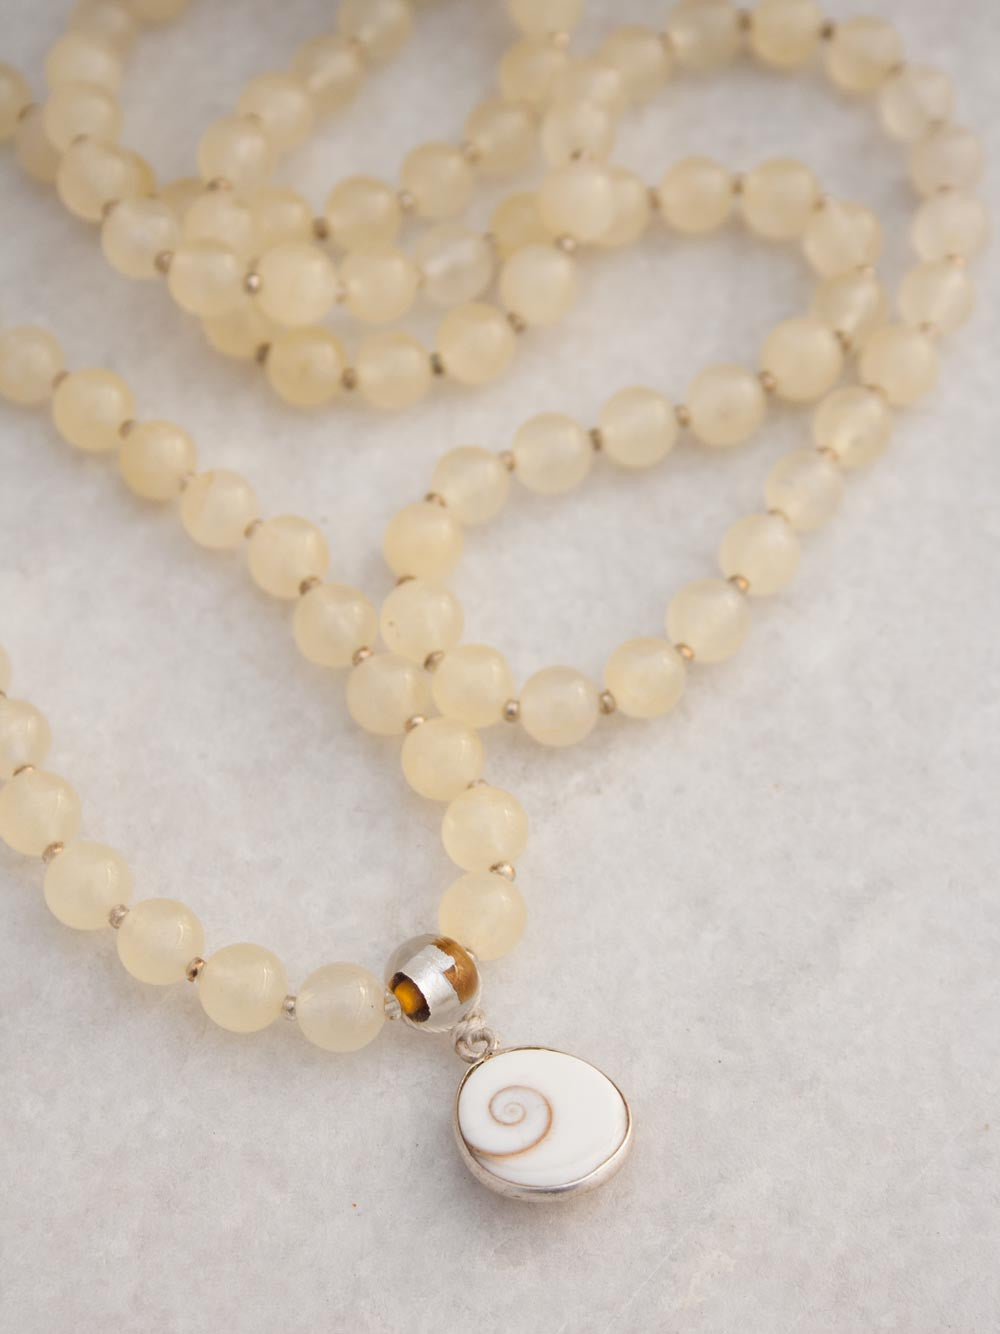 Infinite Bliss Mala, in 8mm citrine yellow aventurine, has a glass/silver foil Guru bead & shell/silver Shiv Eye pendant: partial view